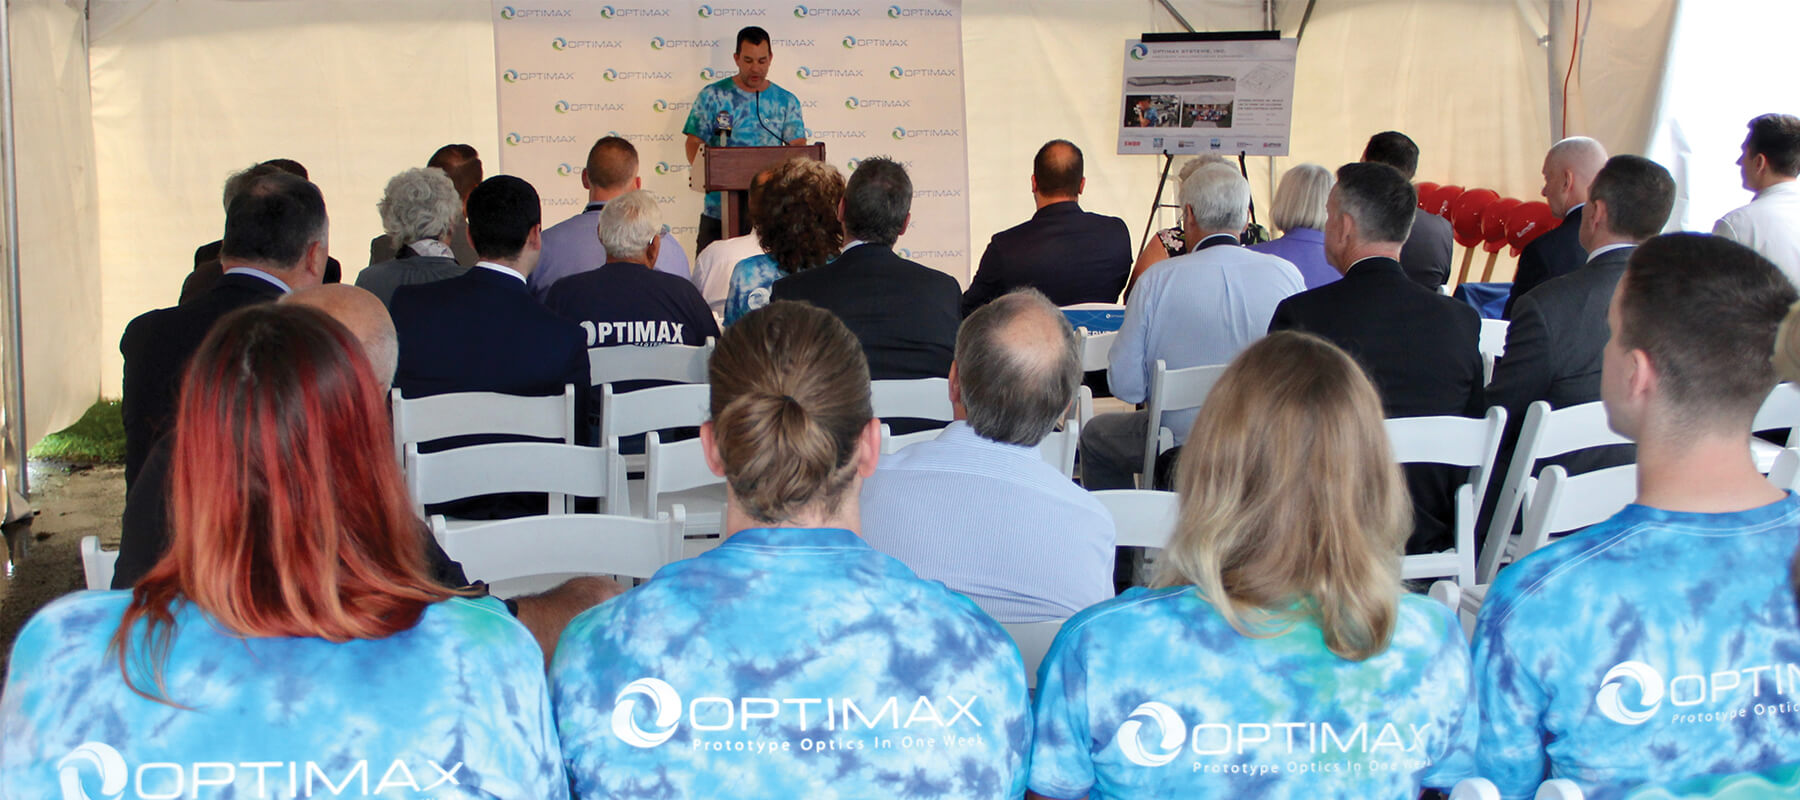 Optimax team in tie dye uniform during groundbreaking expansion